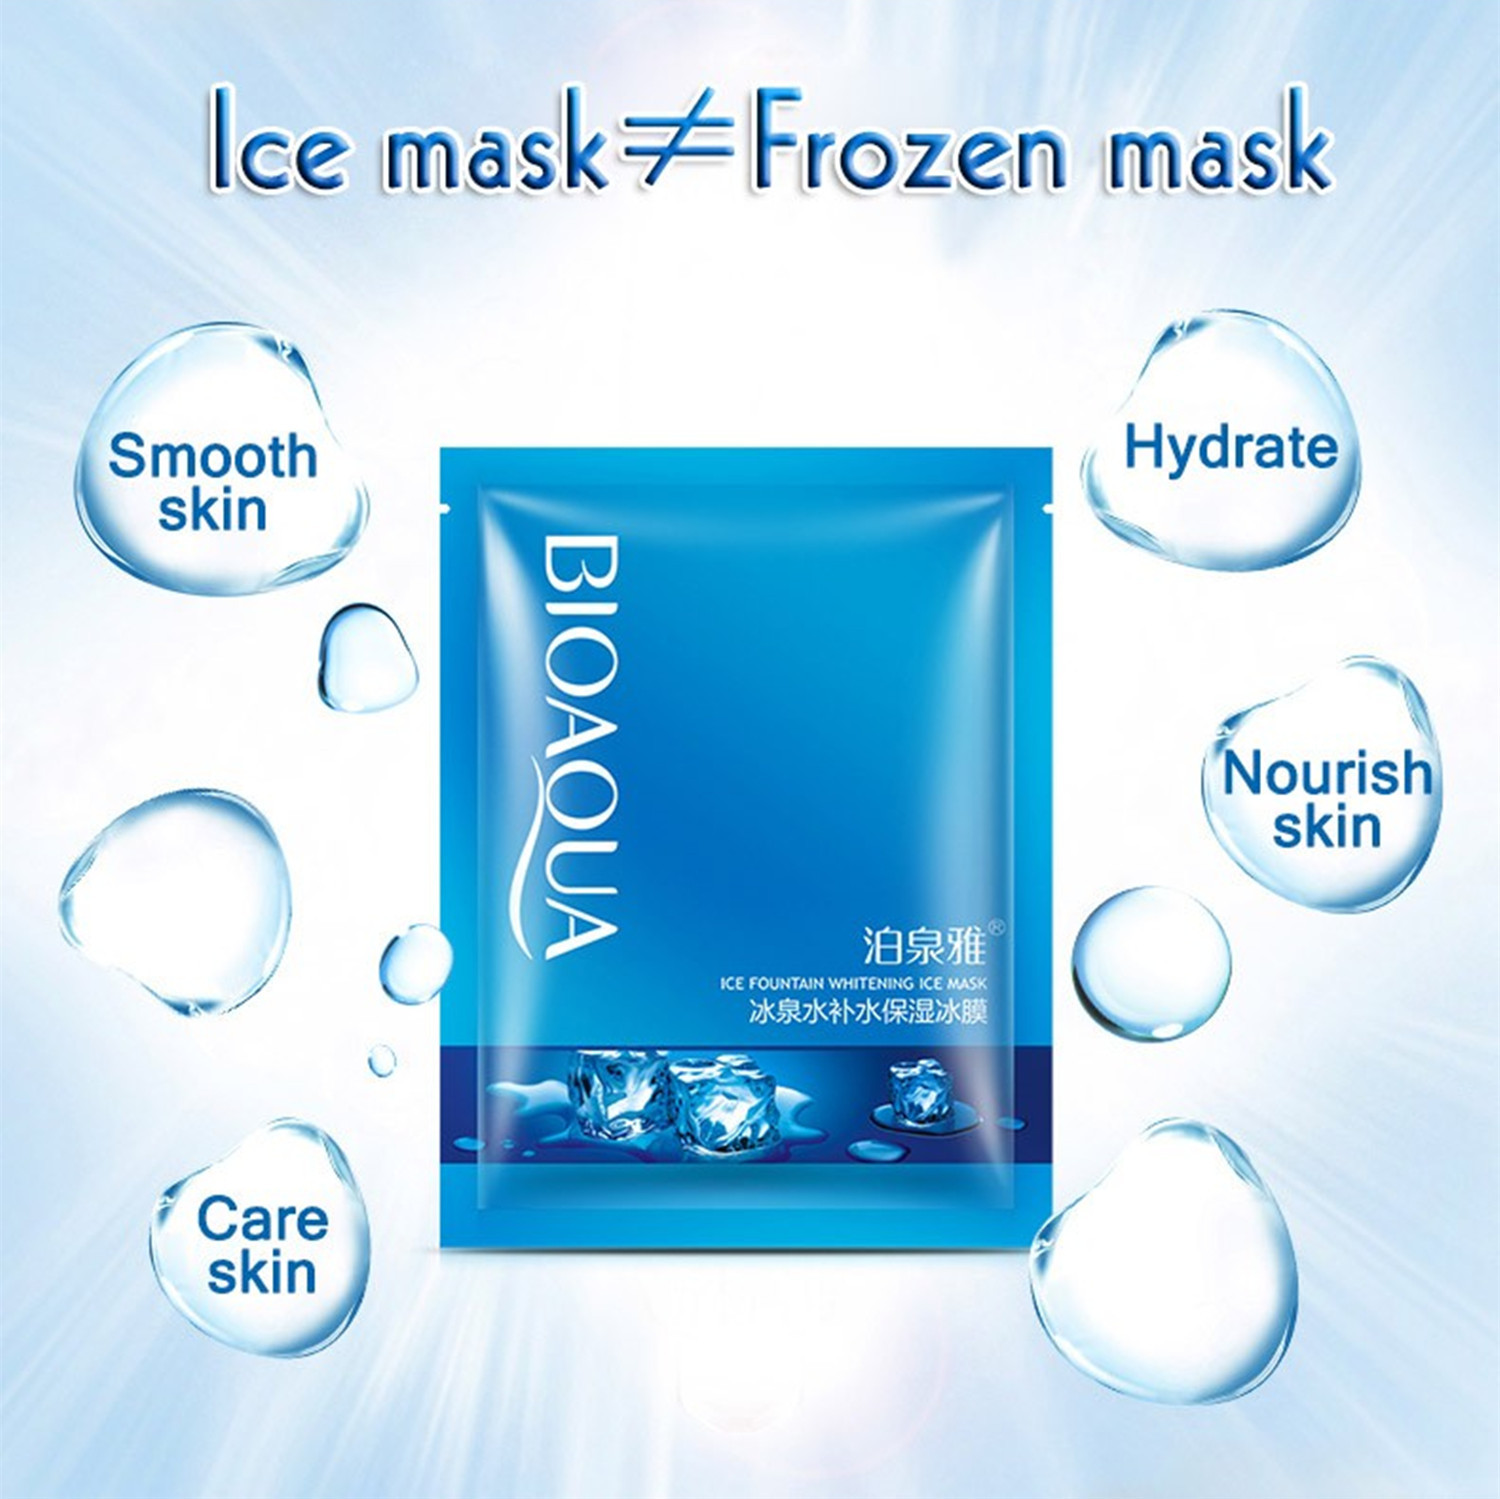 Ice Fountain Whitening Hydrating Moisturizing Facial Mask